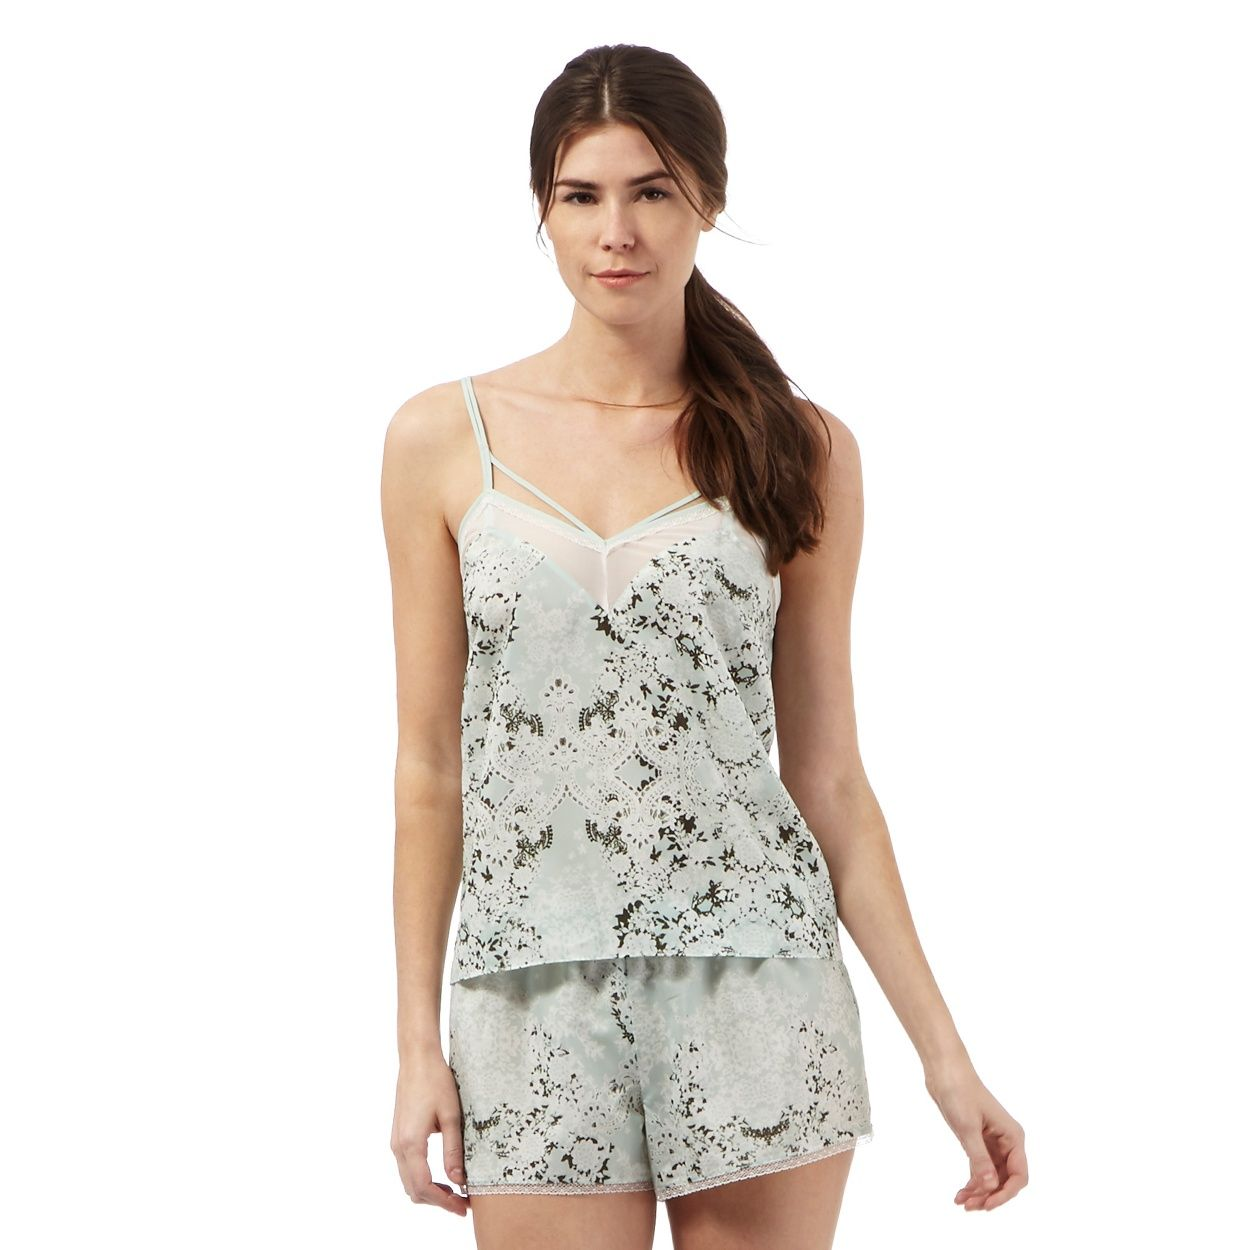 From the 'Nine' collection by Savannah Miller, this camisole will add a stylish touch to nightwear collections. Made from luxurious satin with a lace trim, it features a delicate floral-inspired print while the loose-fitting shape ensures a flattering and comfortable fit. Team with the matching shorts or add plain pyjama bottoms for a more pared-back look.